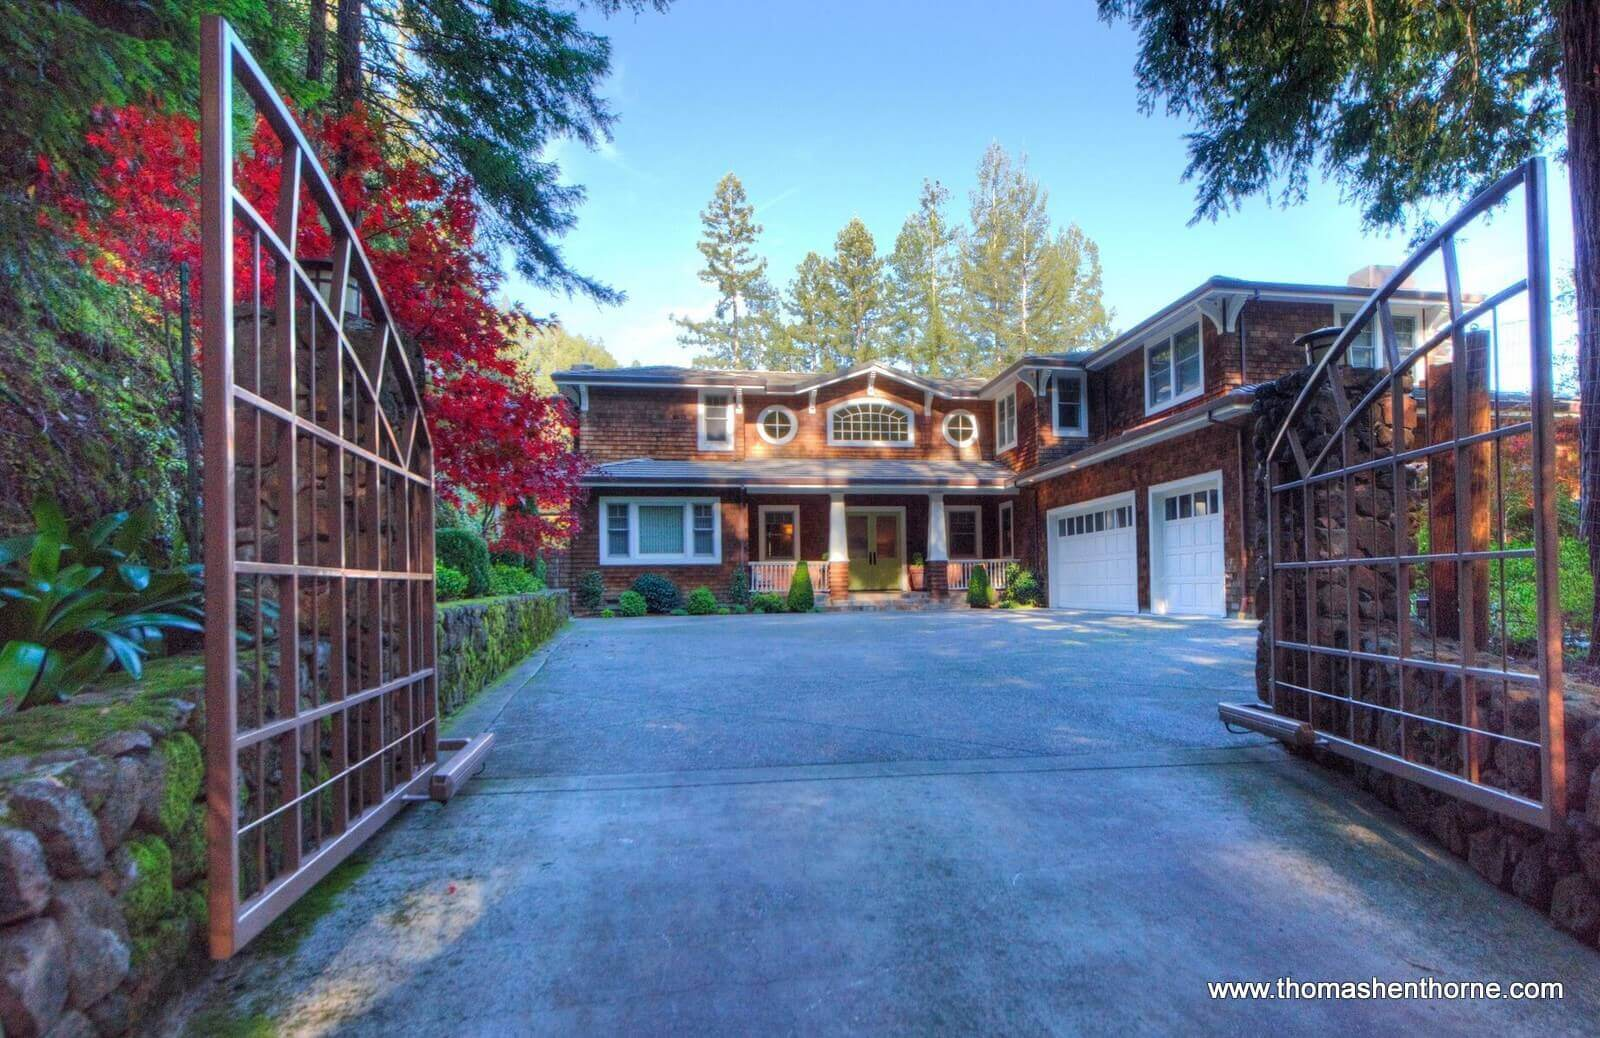 8 Woodland Place front entry gate and home with brown shingles and white trim